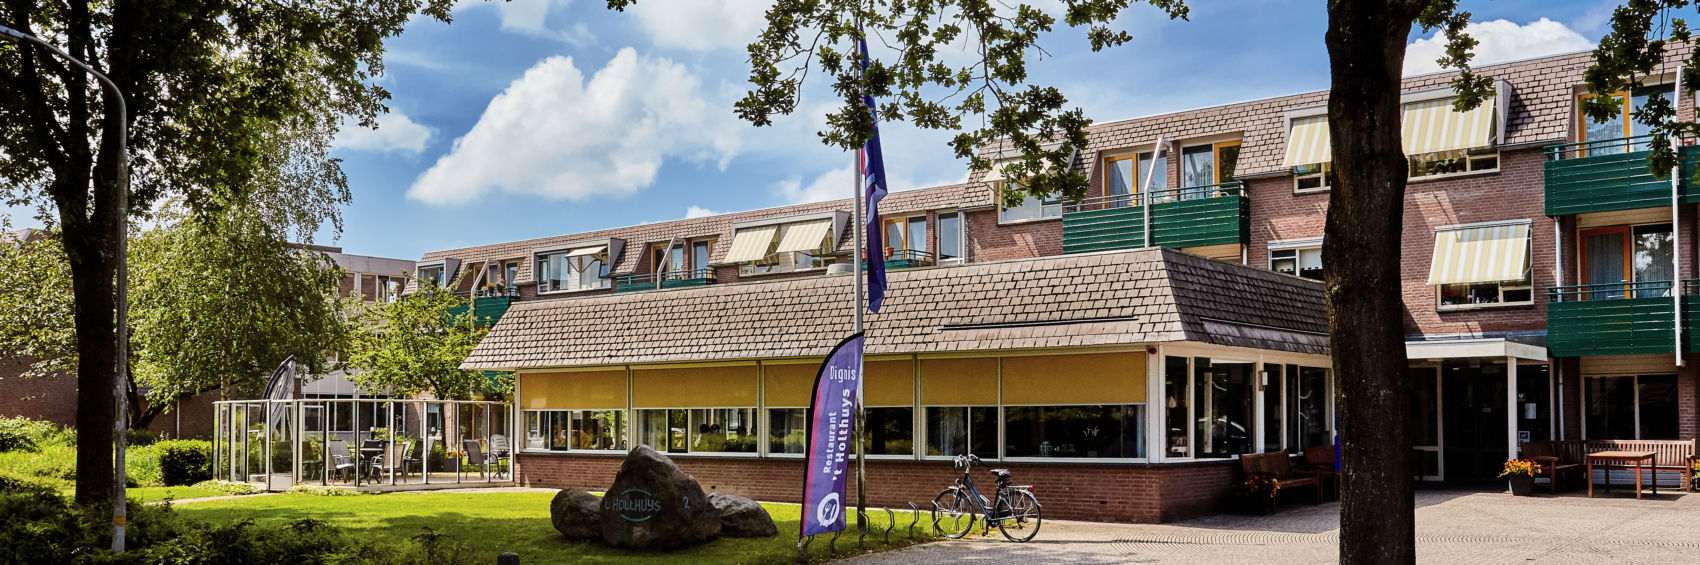 Home u203a Locaties u203a Holthuys woonservicecentrum